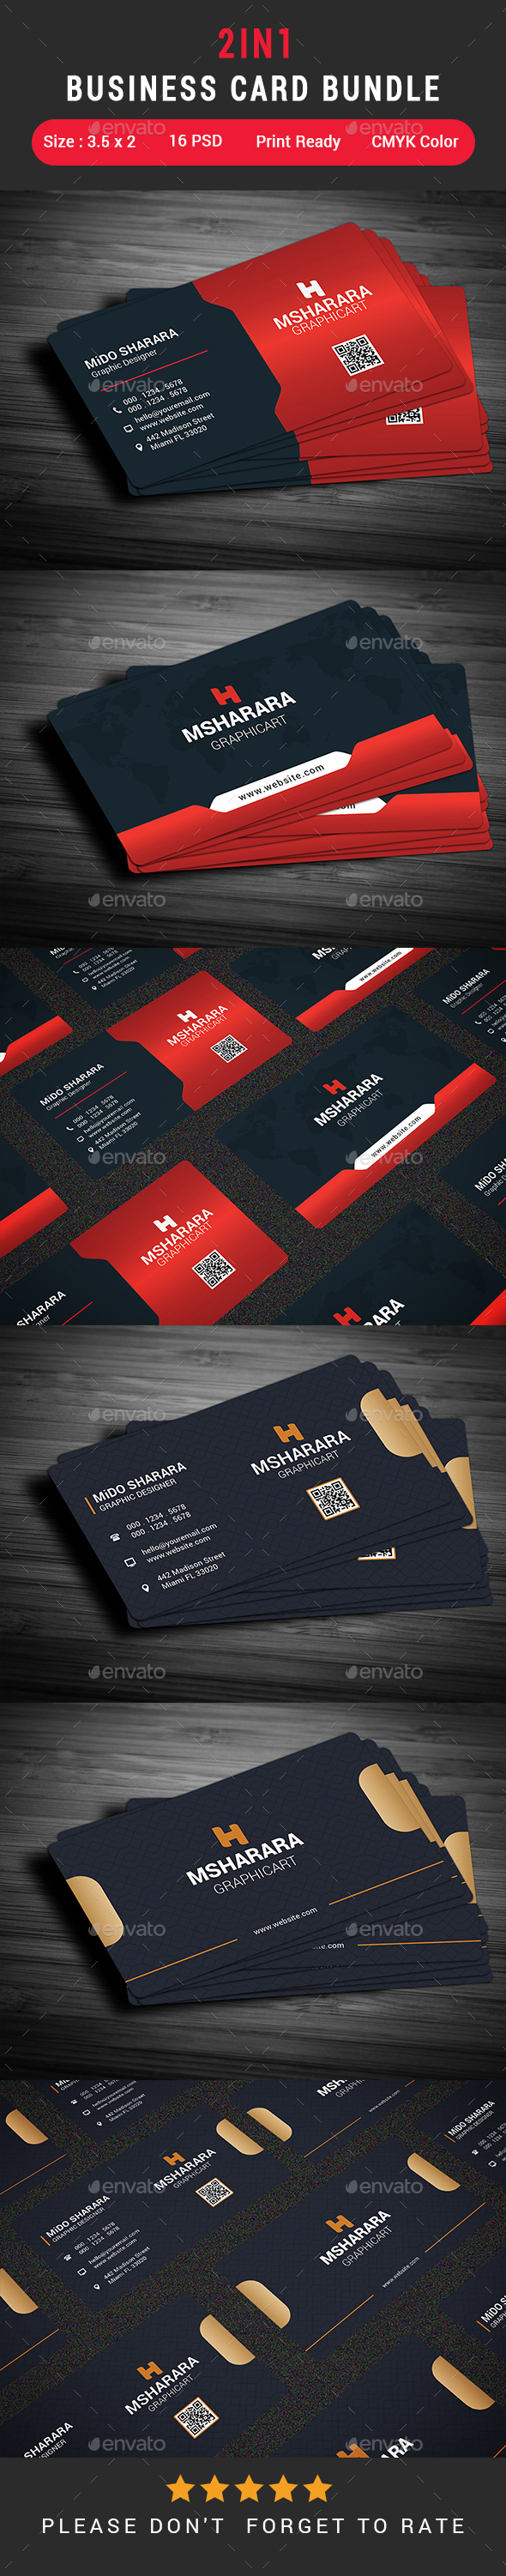 2 in 1 Business Card Bundle - Corporate Business Cards